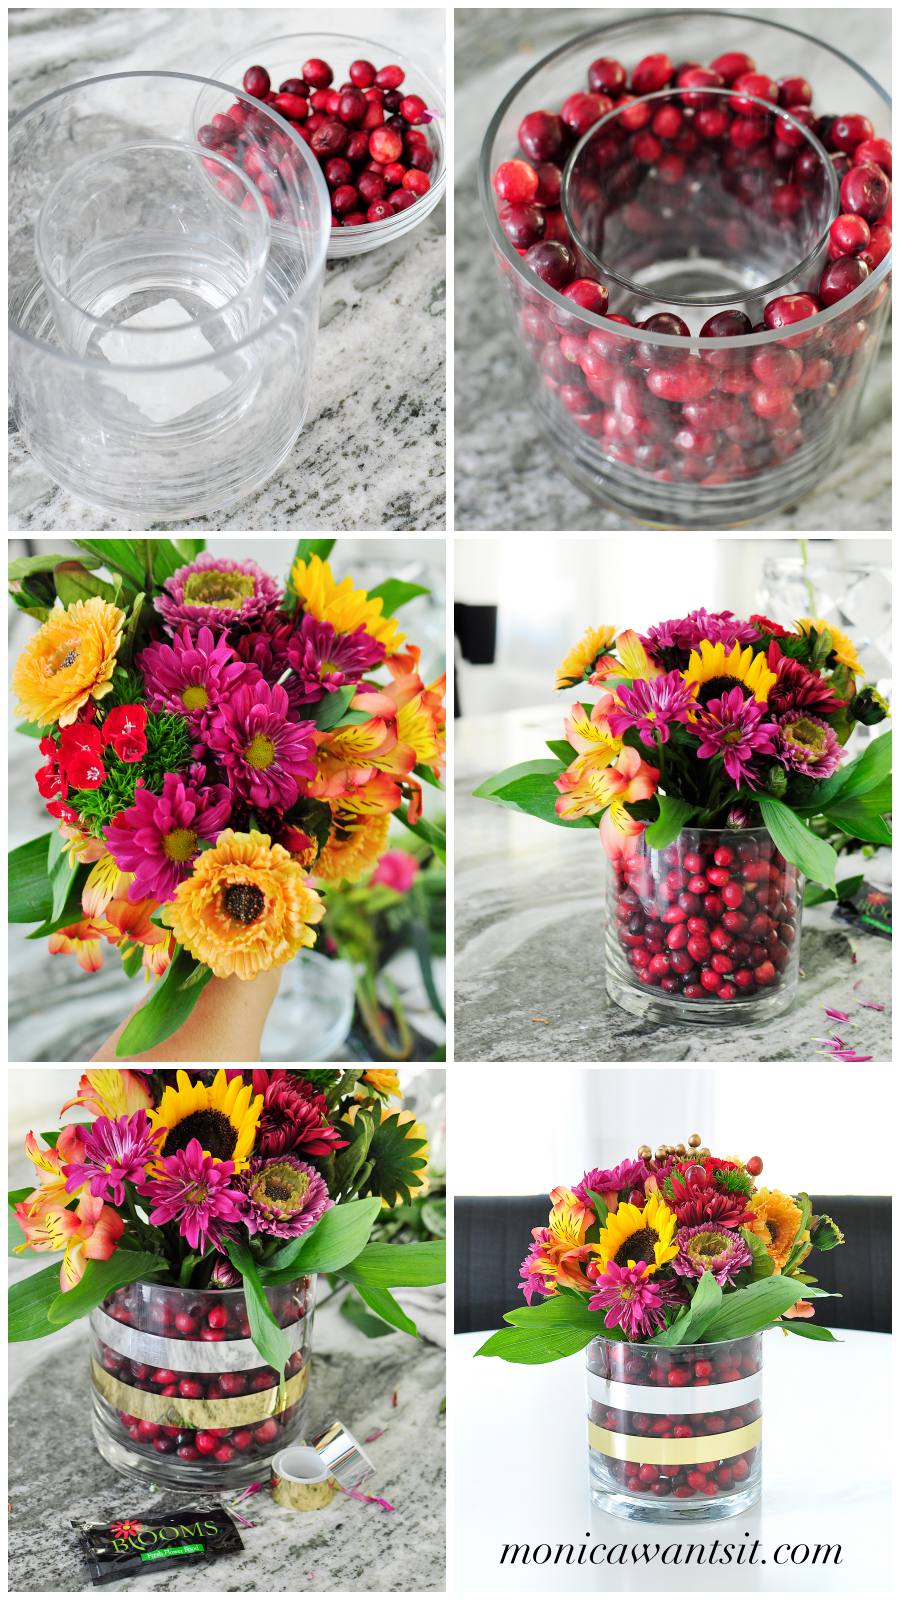 A seasonal mixed grocery store bouquet plus some fresh cranberries makes for a showstopping floral centerpiece that will add a festive touch to any holiday tablescape.